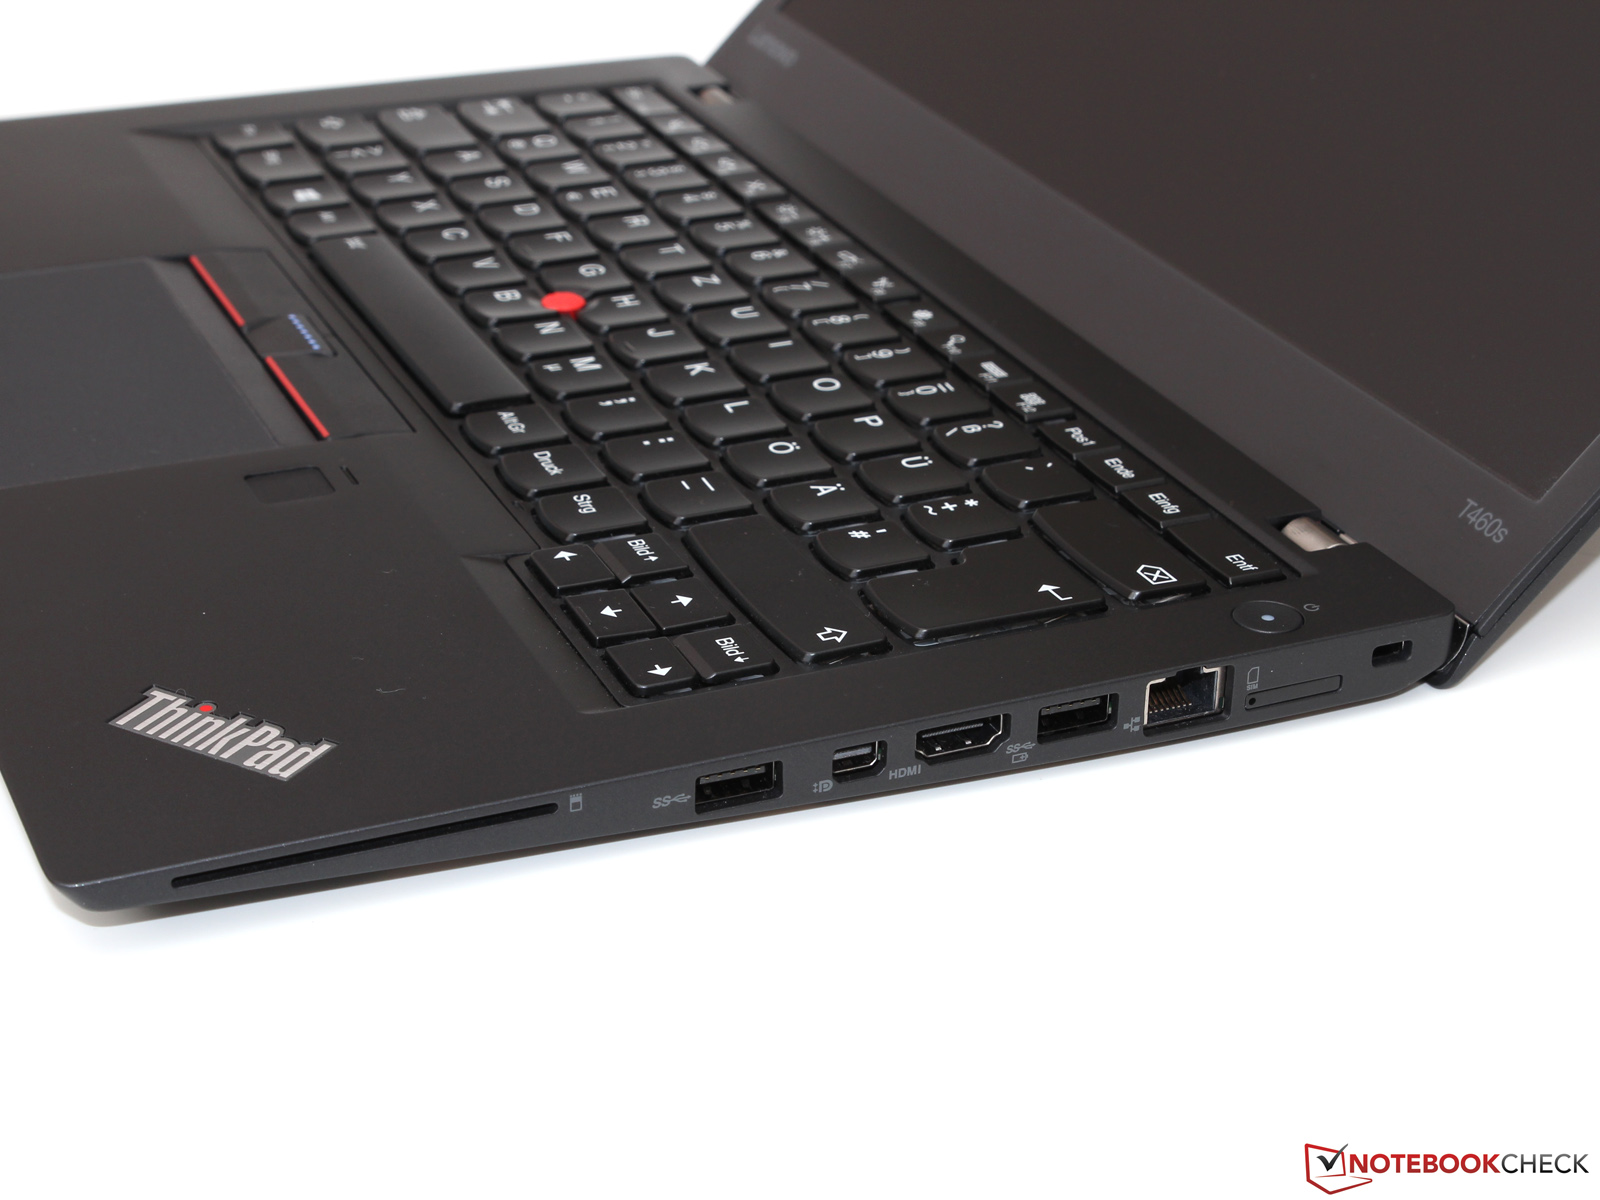 Lenovo ThinkPad R400 Smart Card Reader Drivers for Windows XP